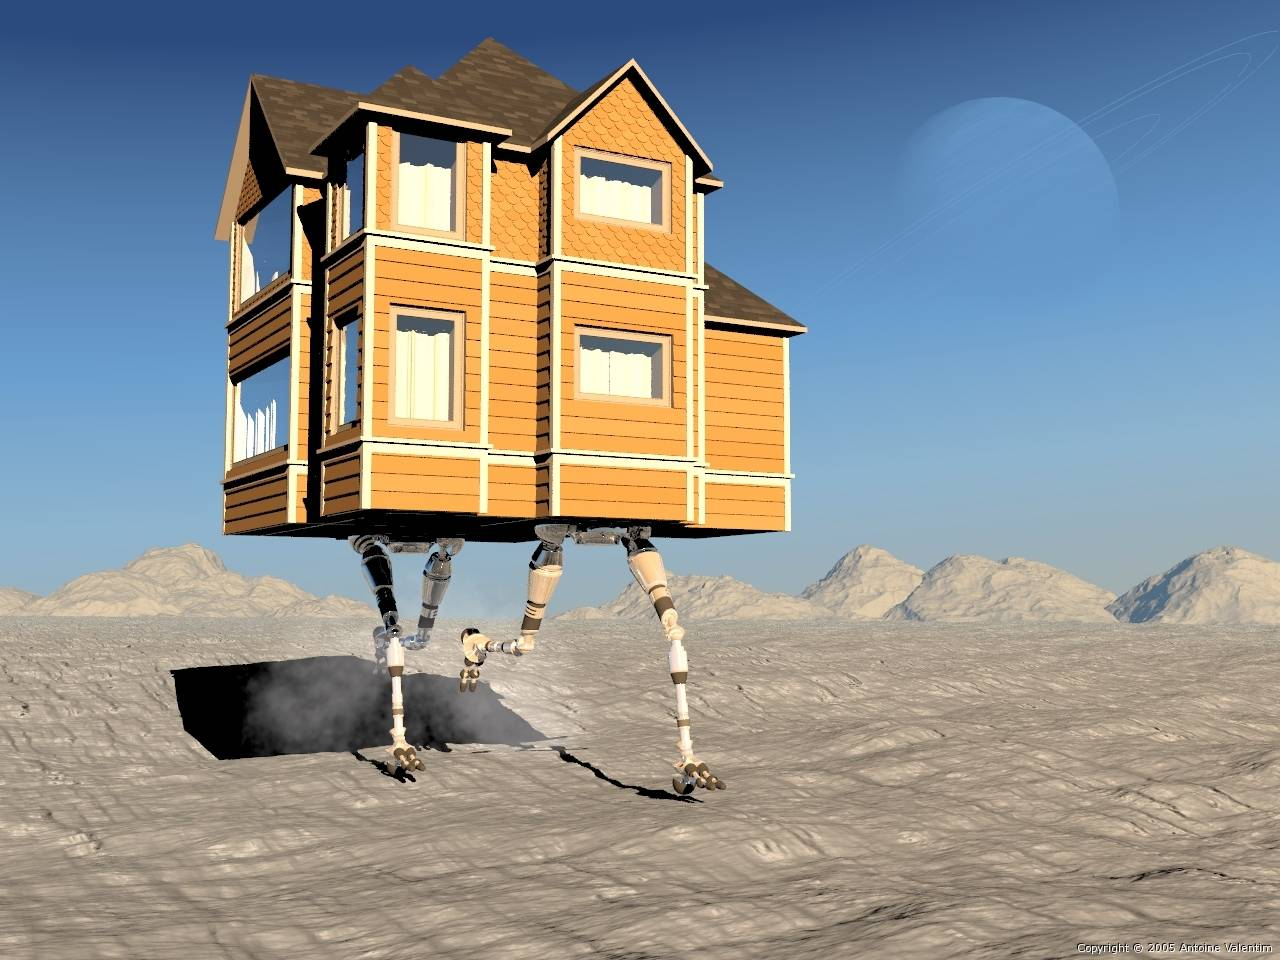 Mobile Homes Any Property Matter Want Know